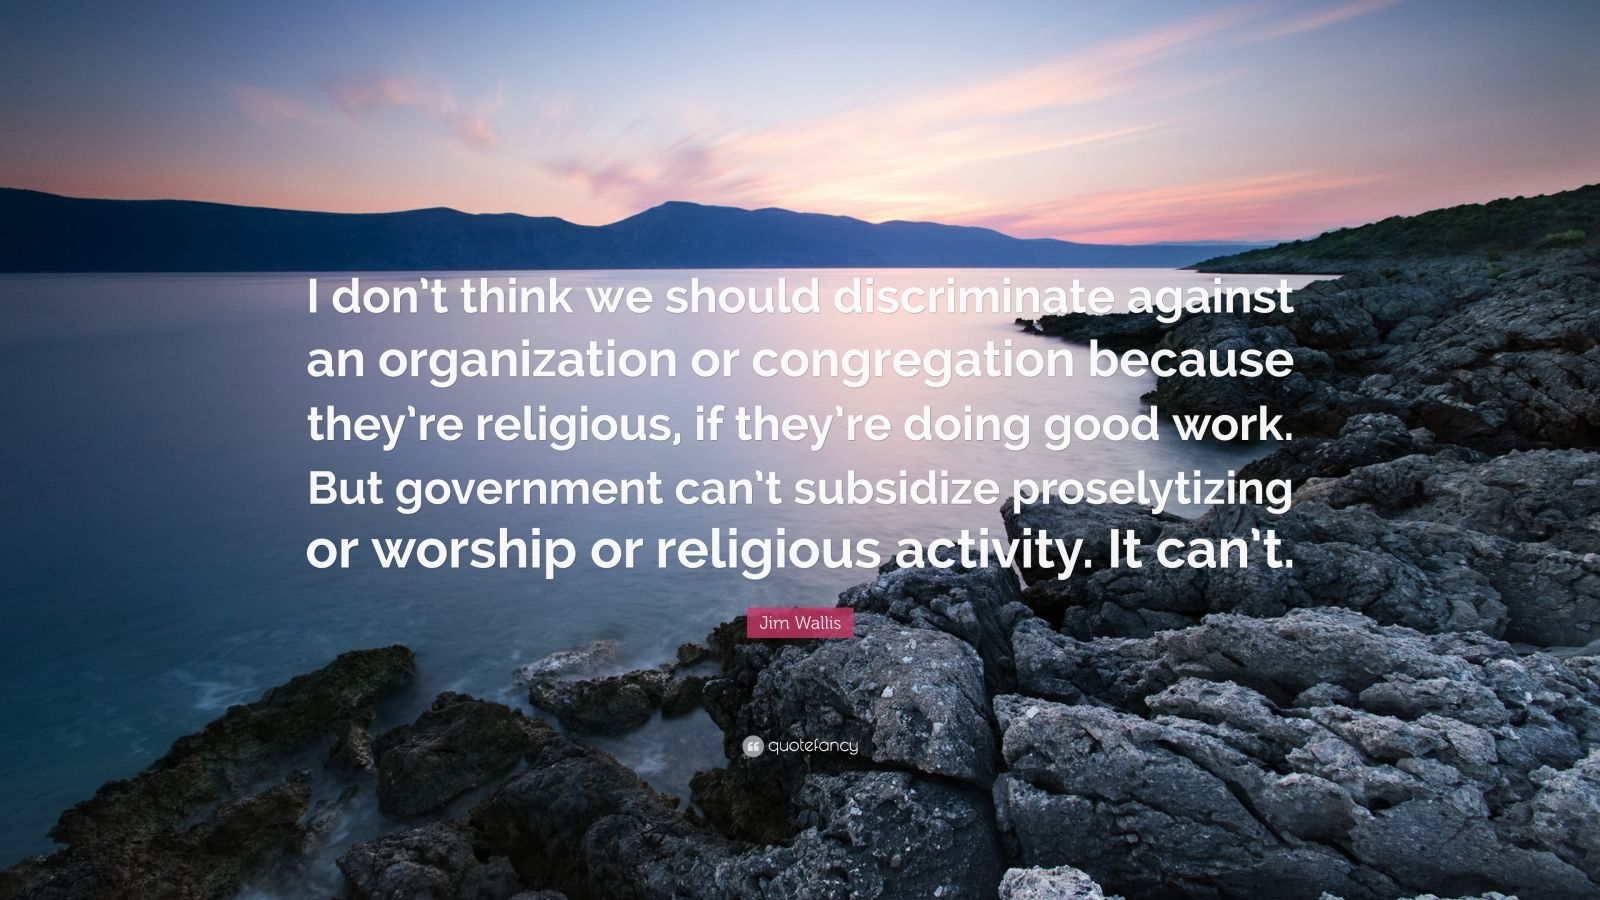 "Jim Wallis Quote: ""I don't think we should discriminate against an organization or congregation because they're religious, if they're doing good work. But government can't subsidize proselytizing or worship or religious activity. It can't."""